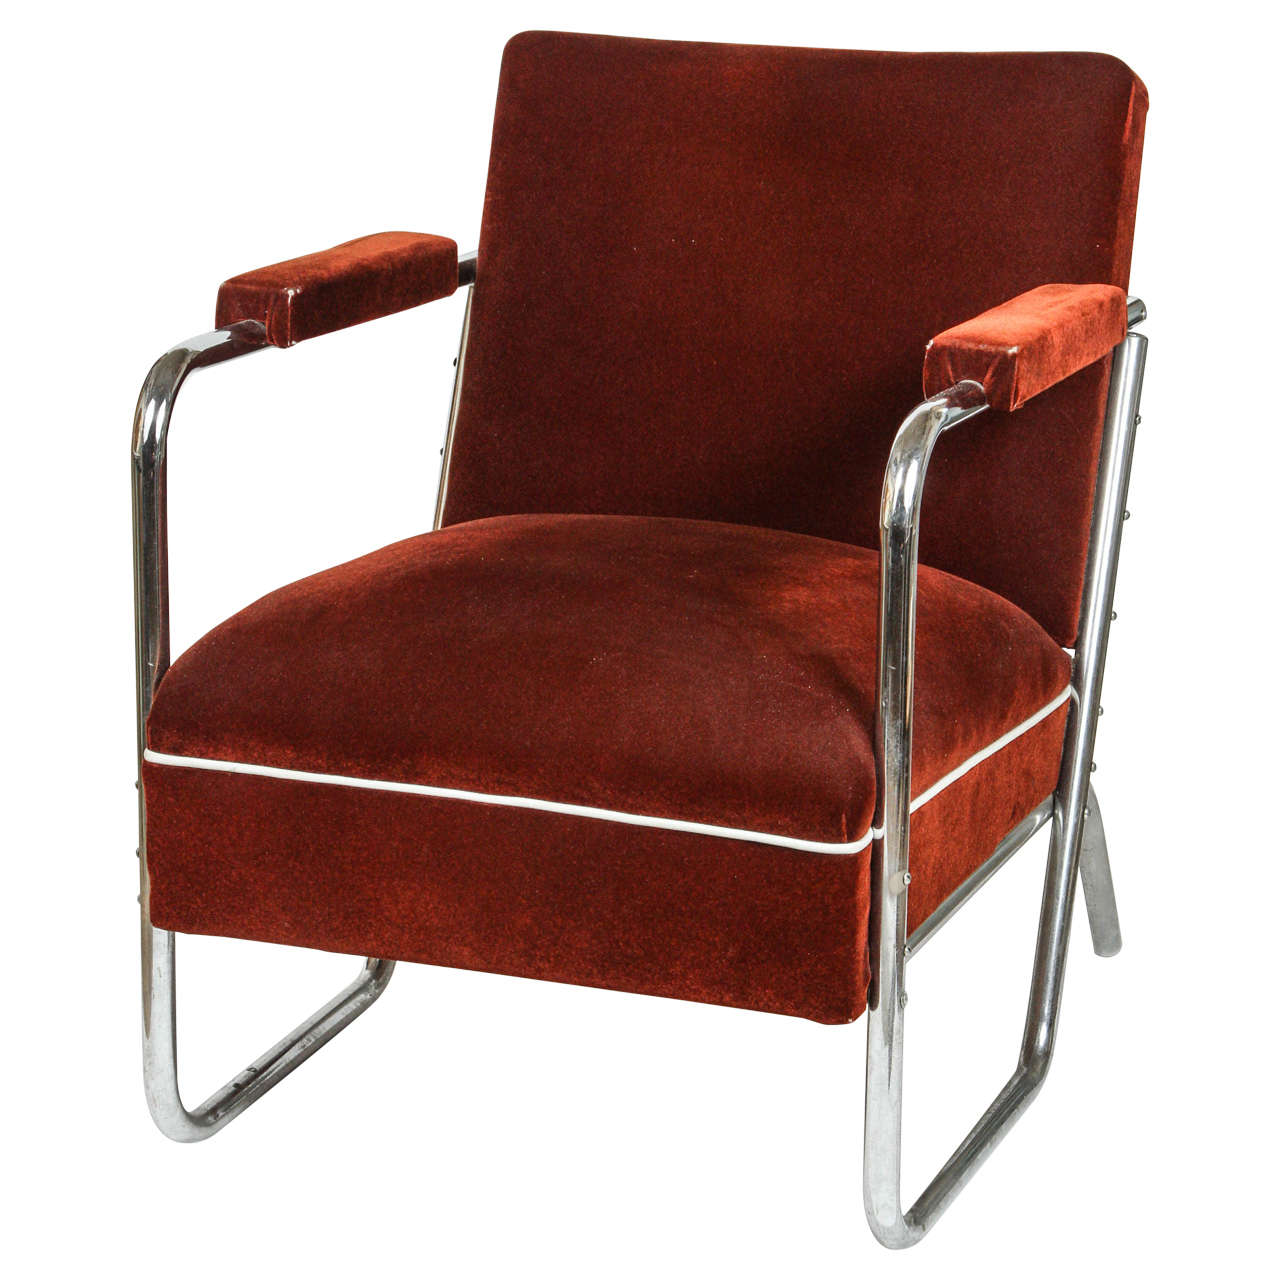 German Chrome Chair With Original Mohair Upholstery At 1stdibs